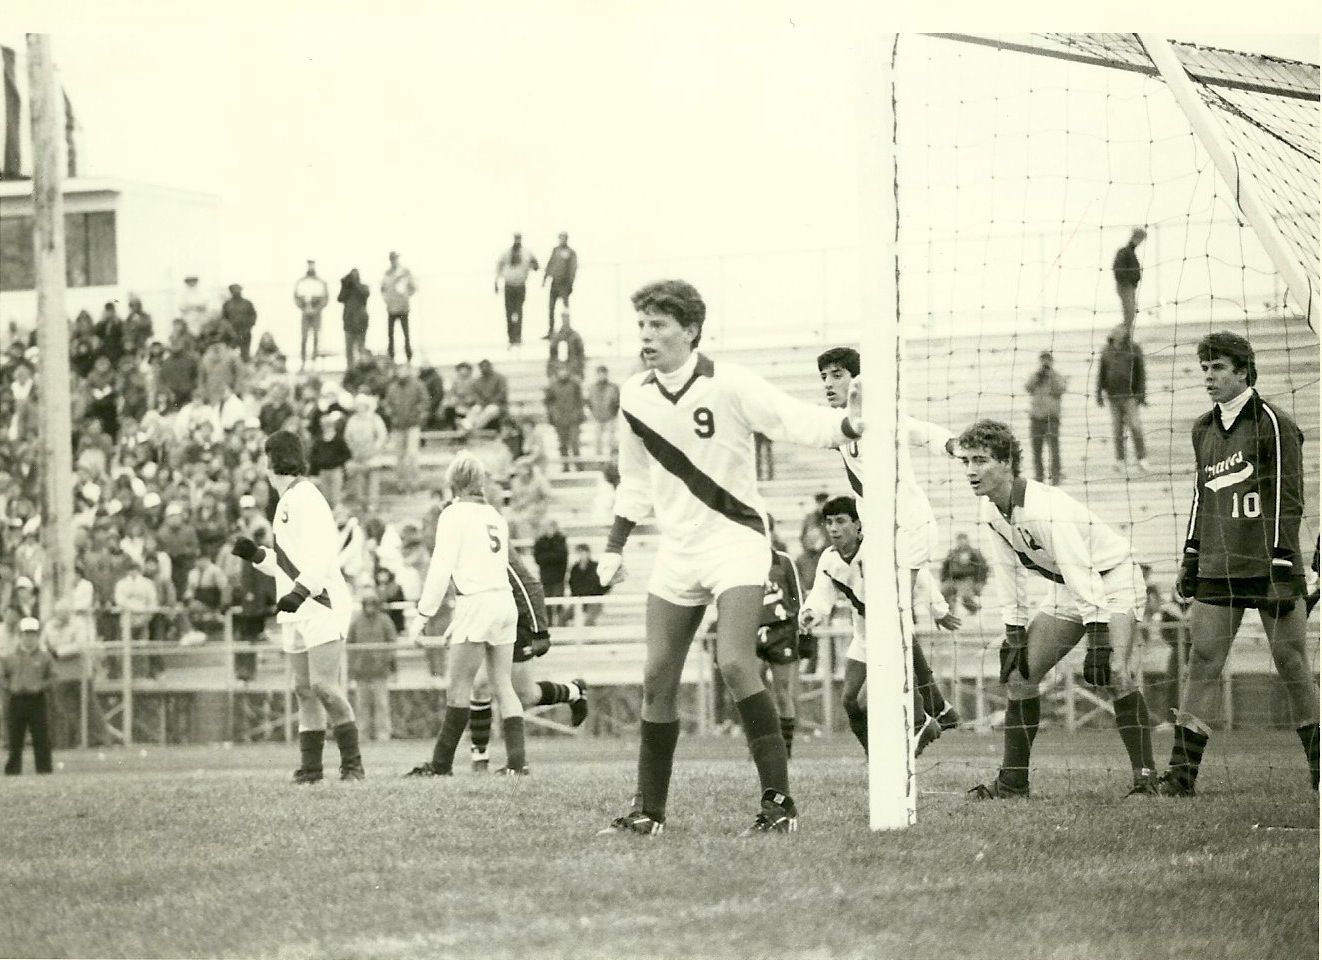 Joe Ciaciura (9) guards the goal in the 1986 State Championship game